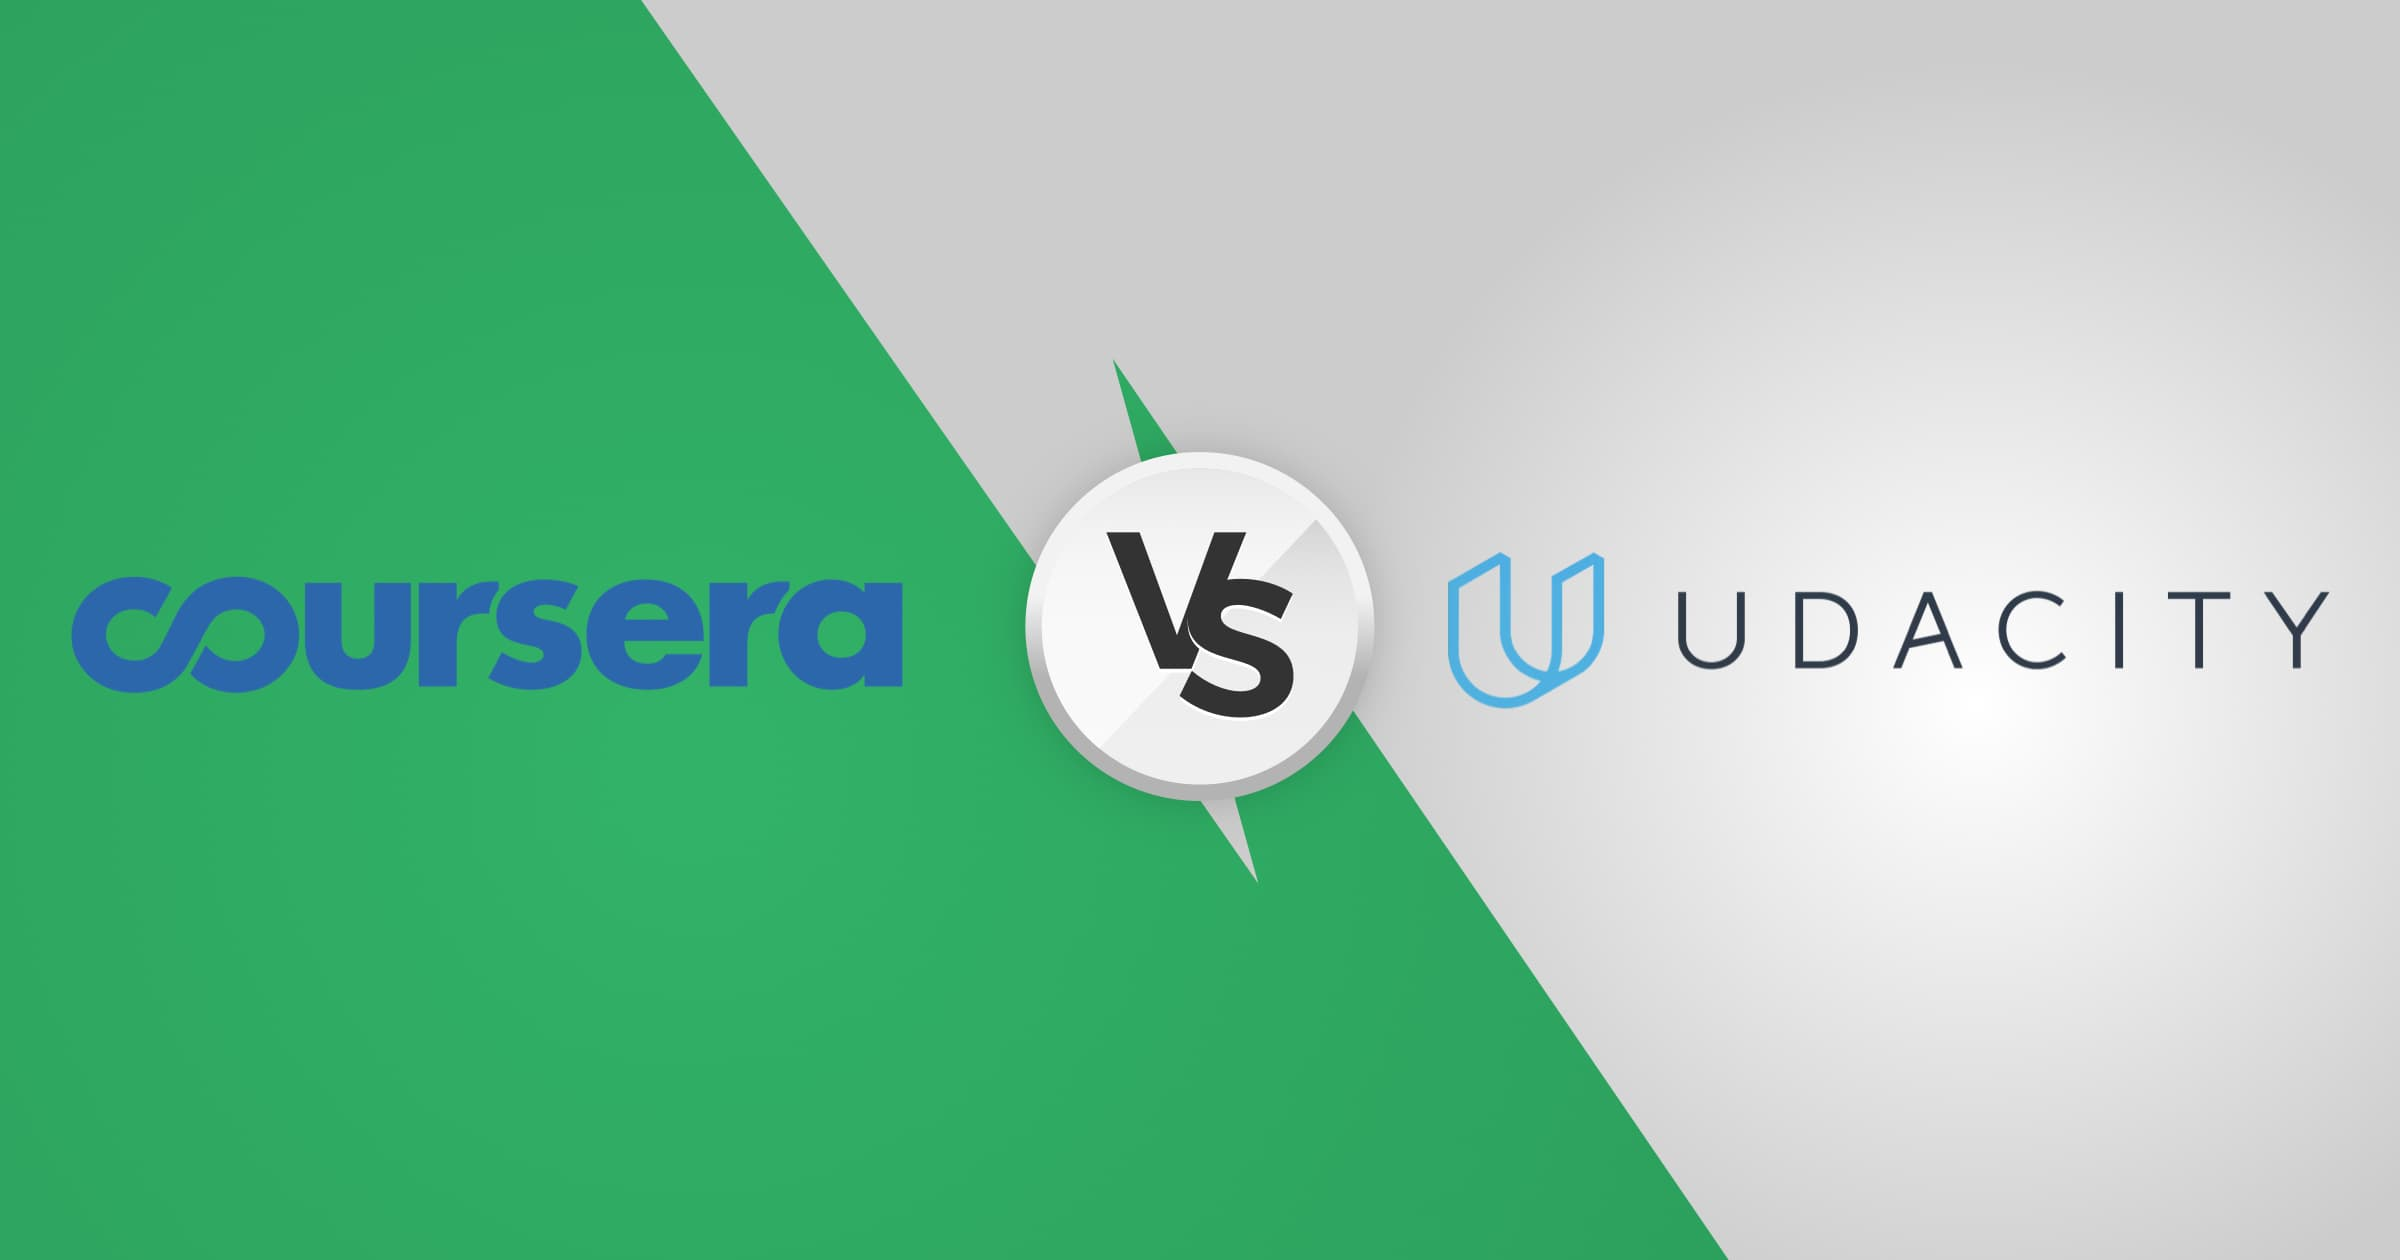 Coursera vs Udacity: Main Differences You Should Know